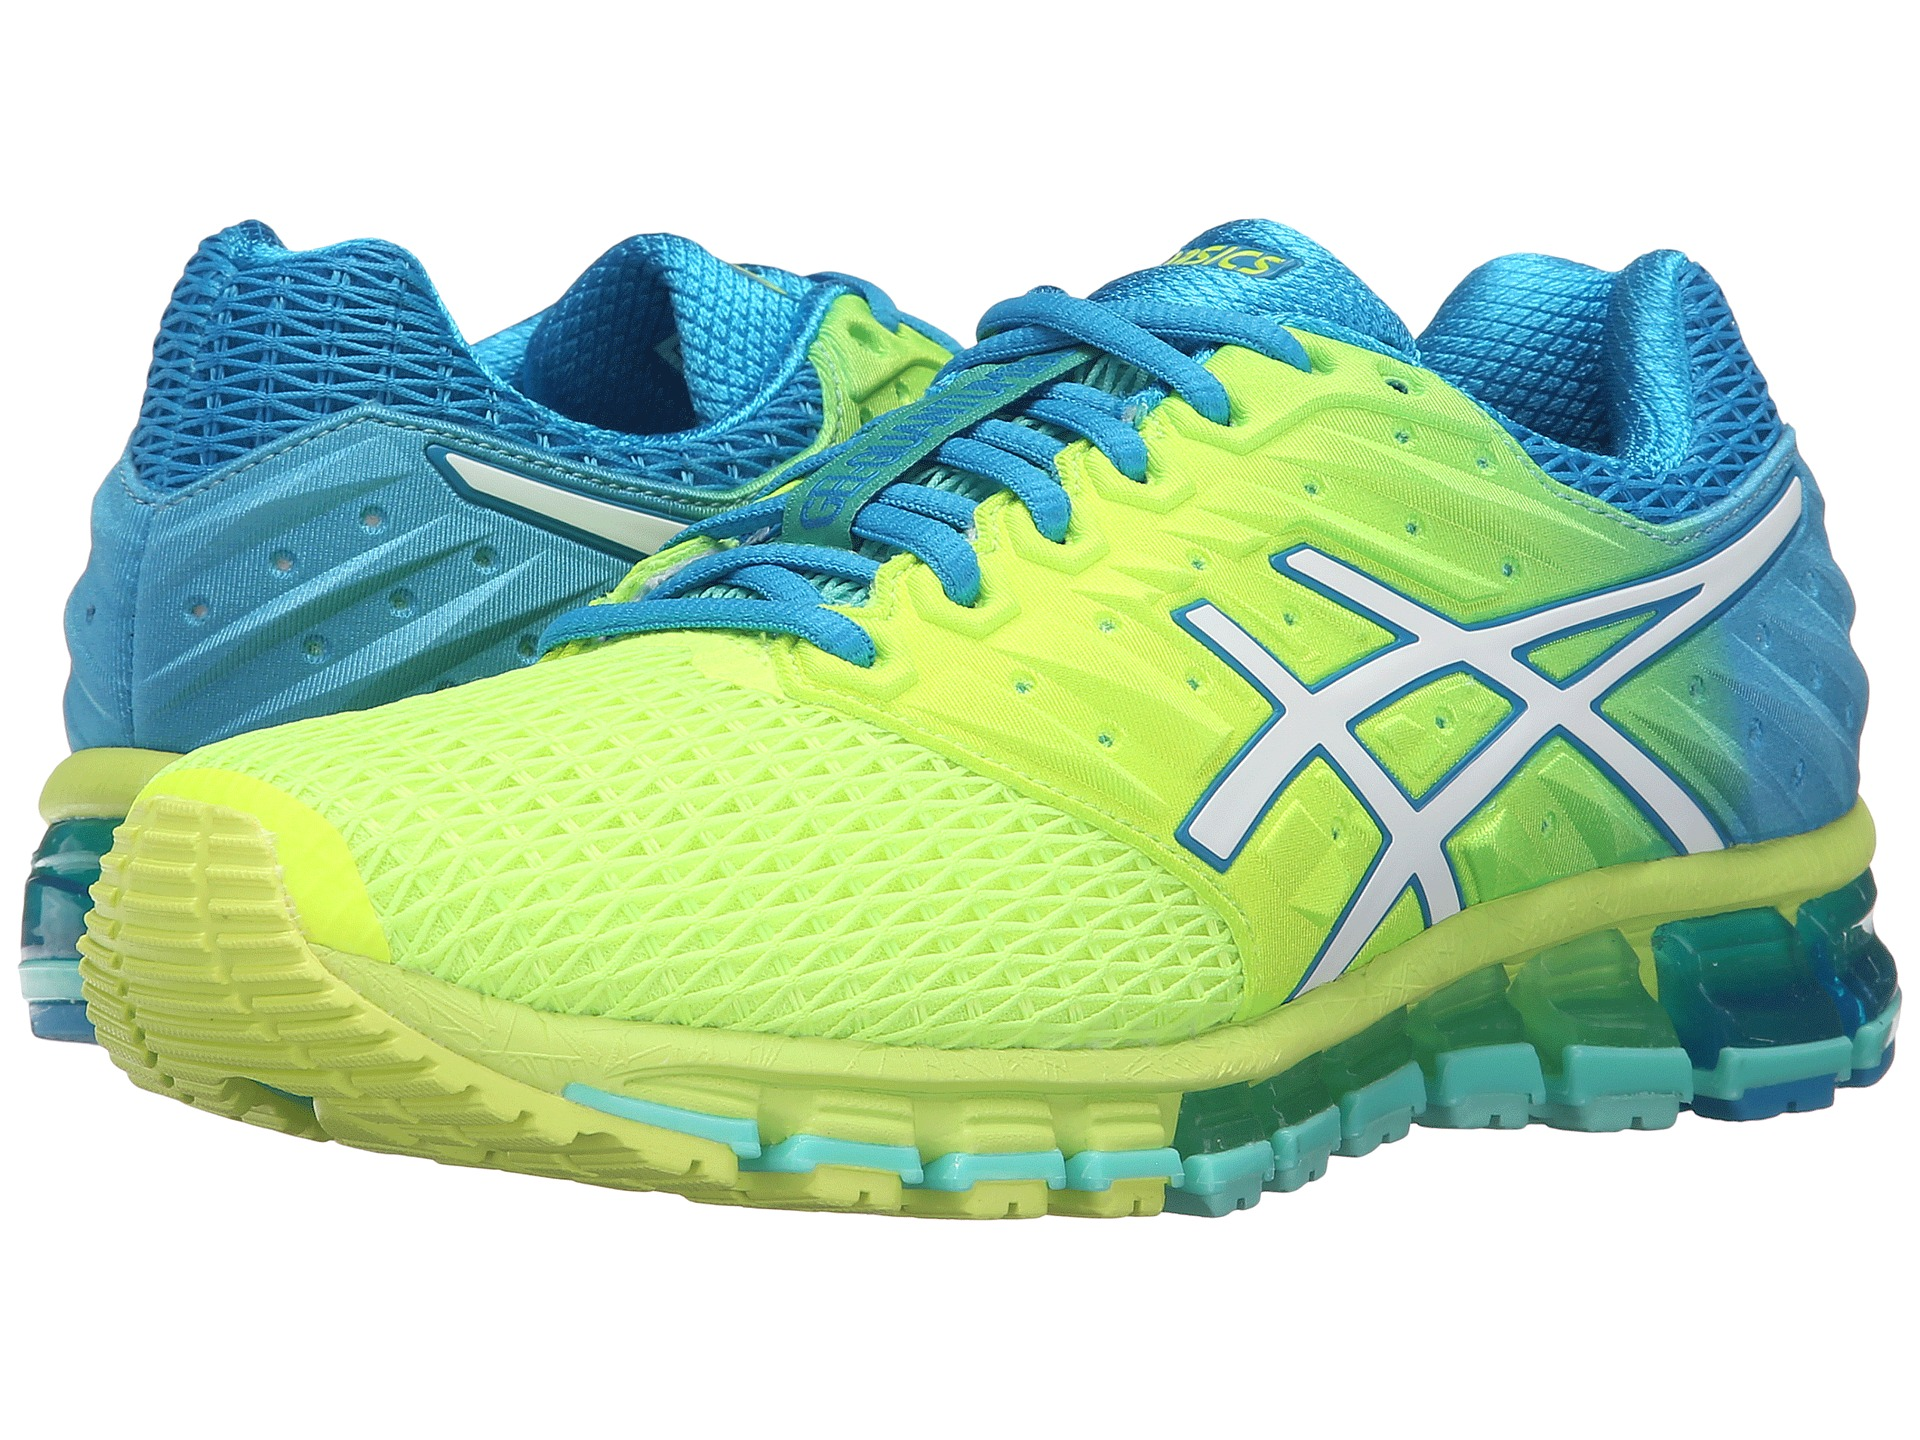 asics gel quantum 180 2 safety yellow white blue jewel free shipping both ways. Black Bedroom Furniture Sets. Home Design Ideas